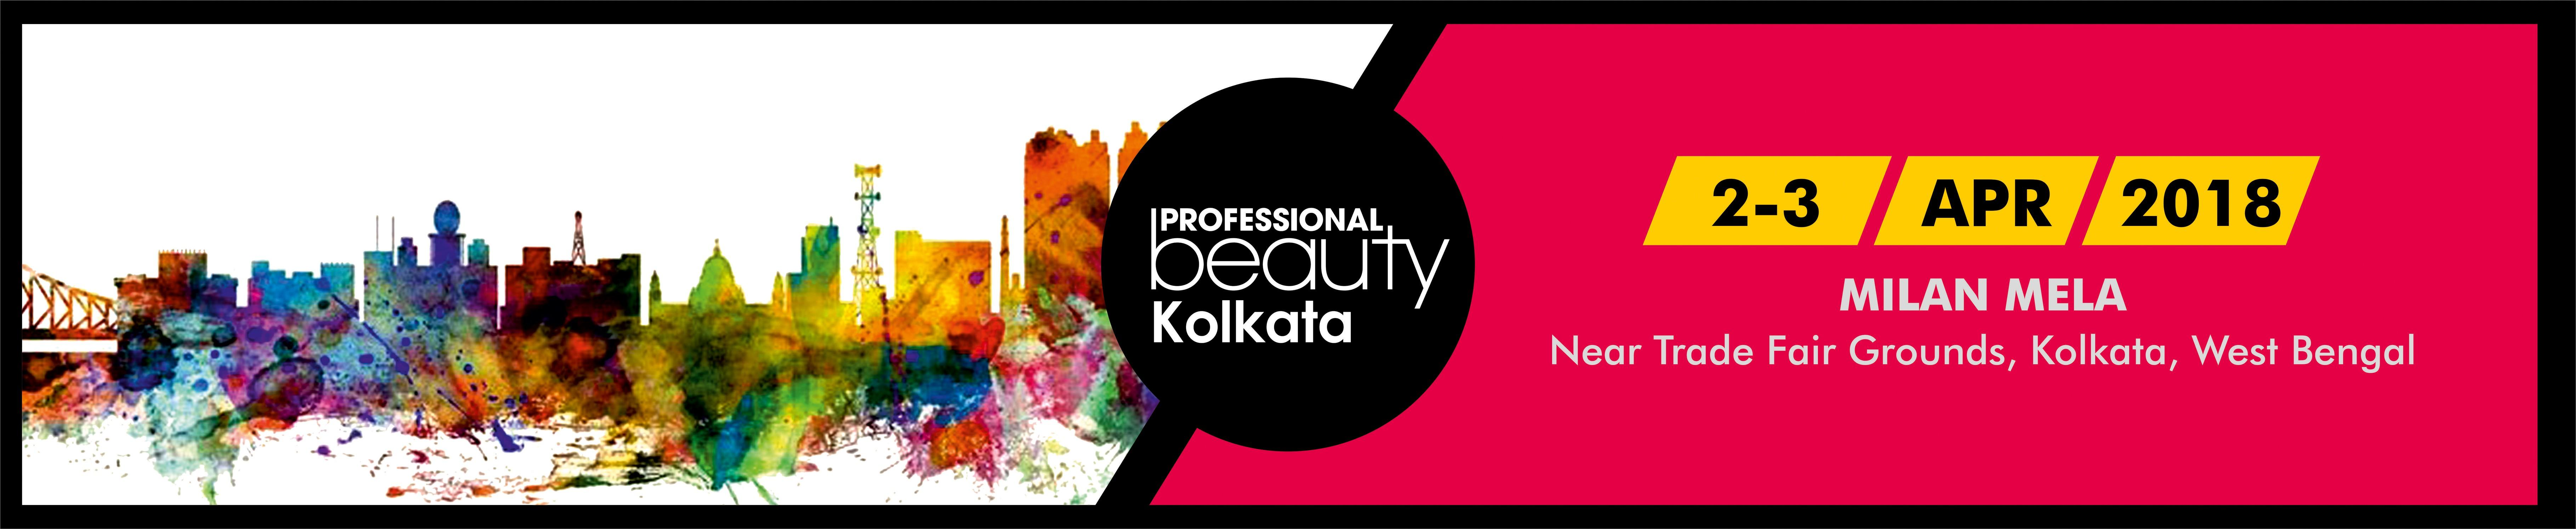 Kolkata india events things to do eventbrite xflitez Gallery